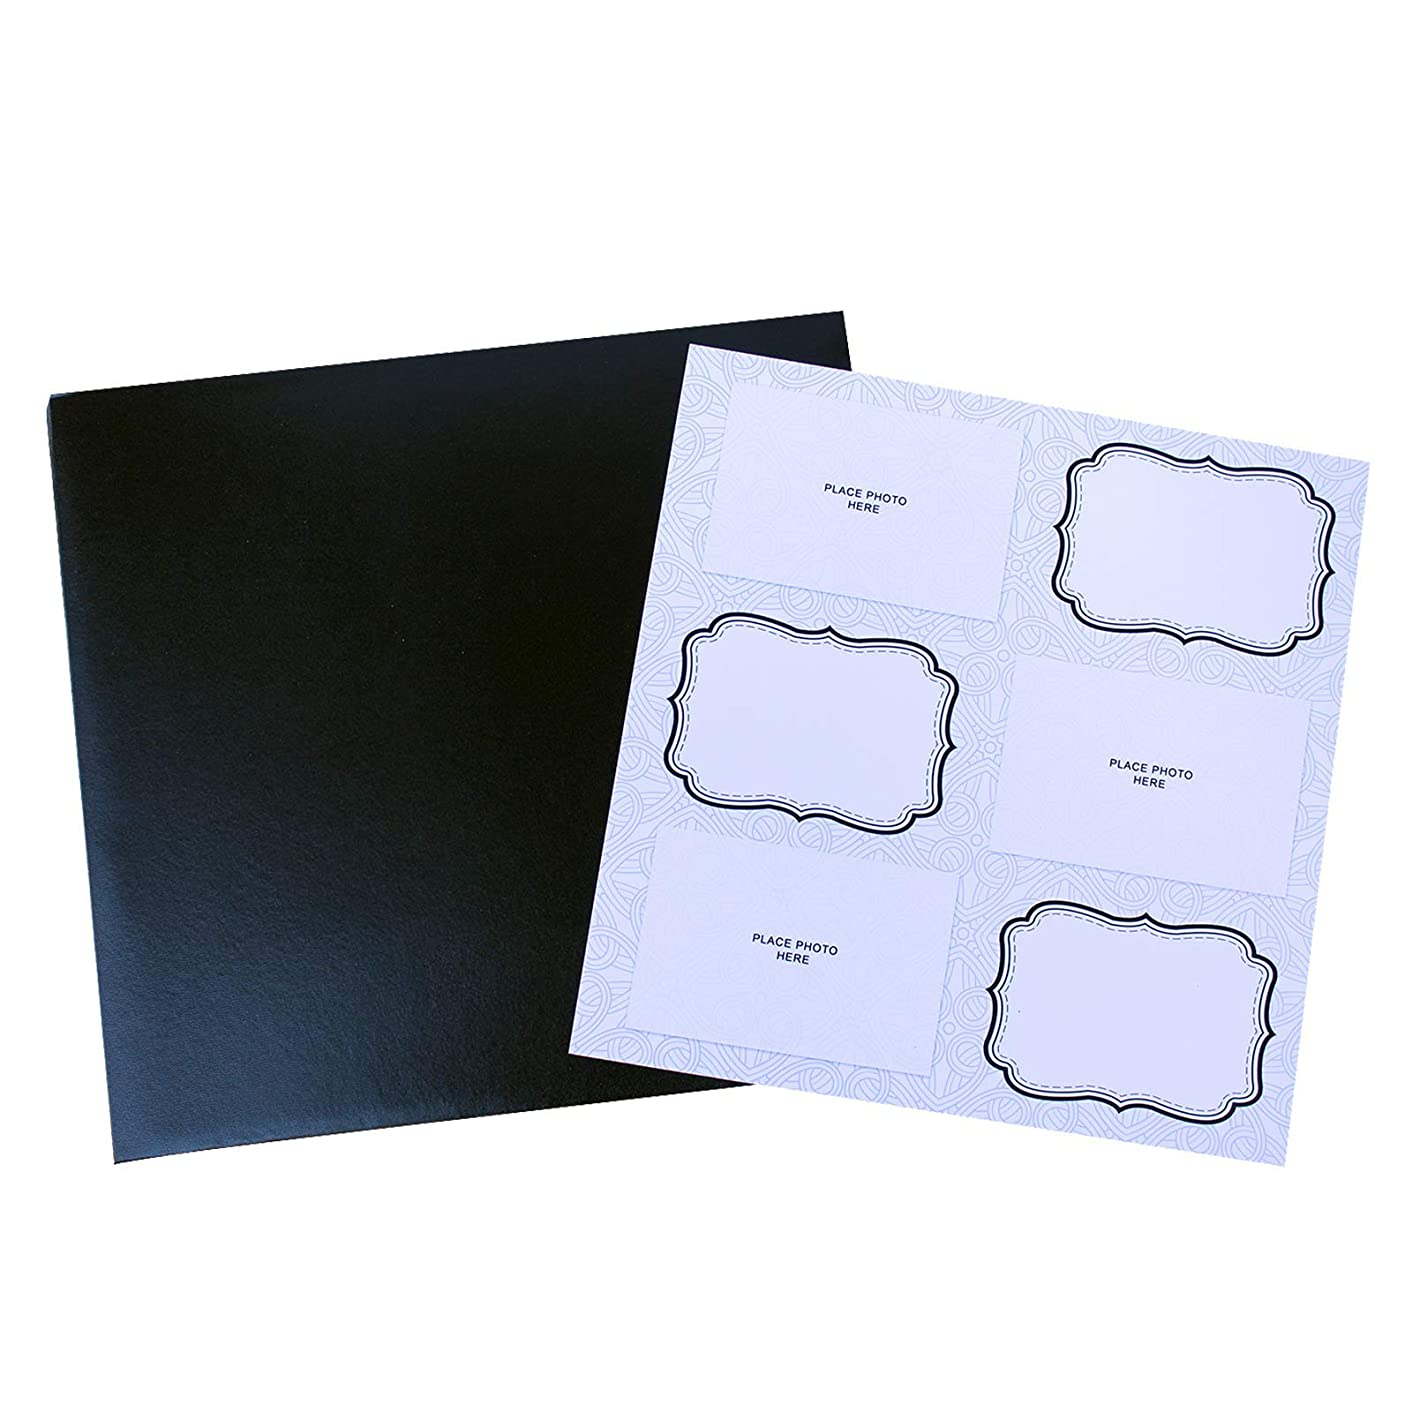 Photo Booth Album Black Leatherette with 10 Sheets (Abstract White Design Pages 4x6)